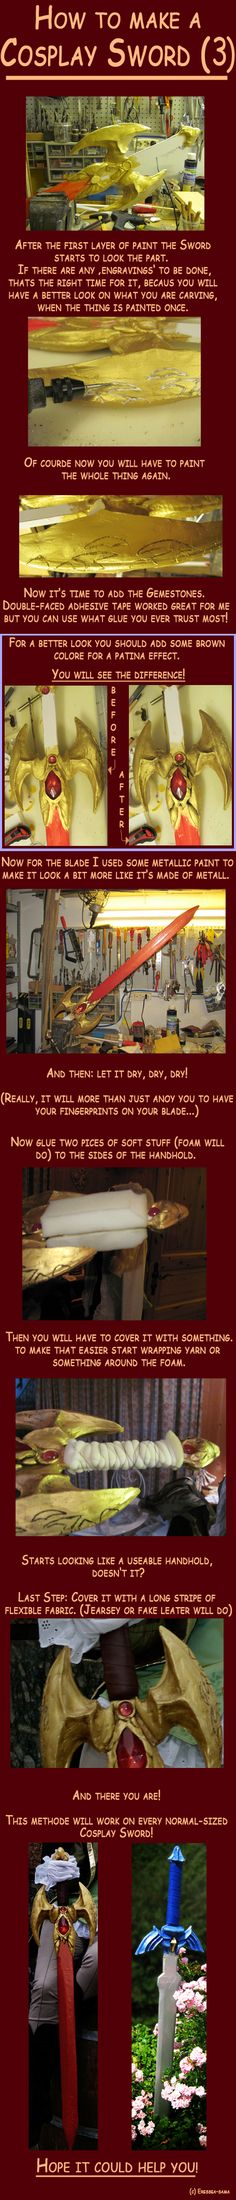 DIY How to make a Cosplay Sword 3 by *Eressea-sama on deviantART/// I always wondered about the handle